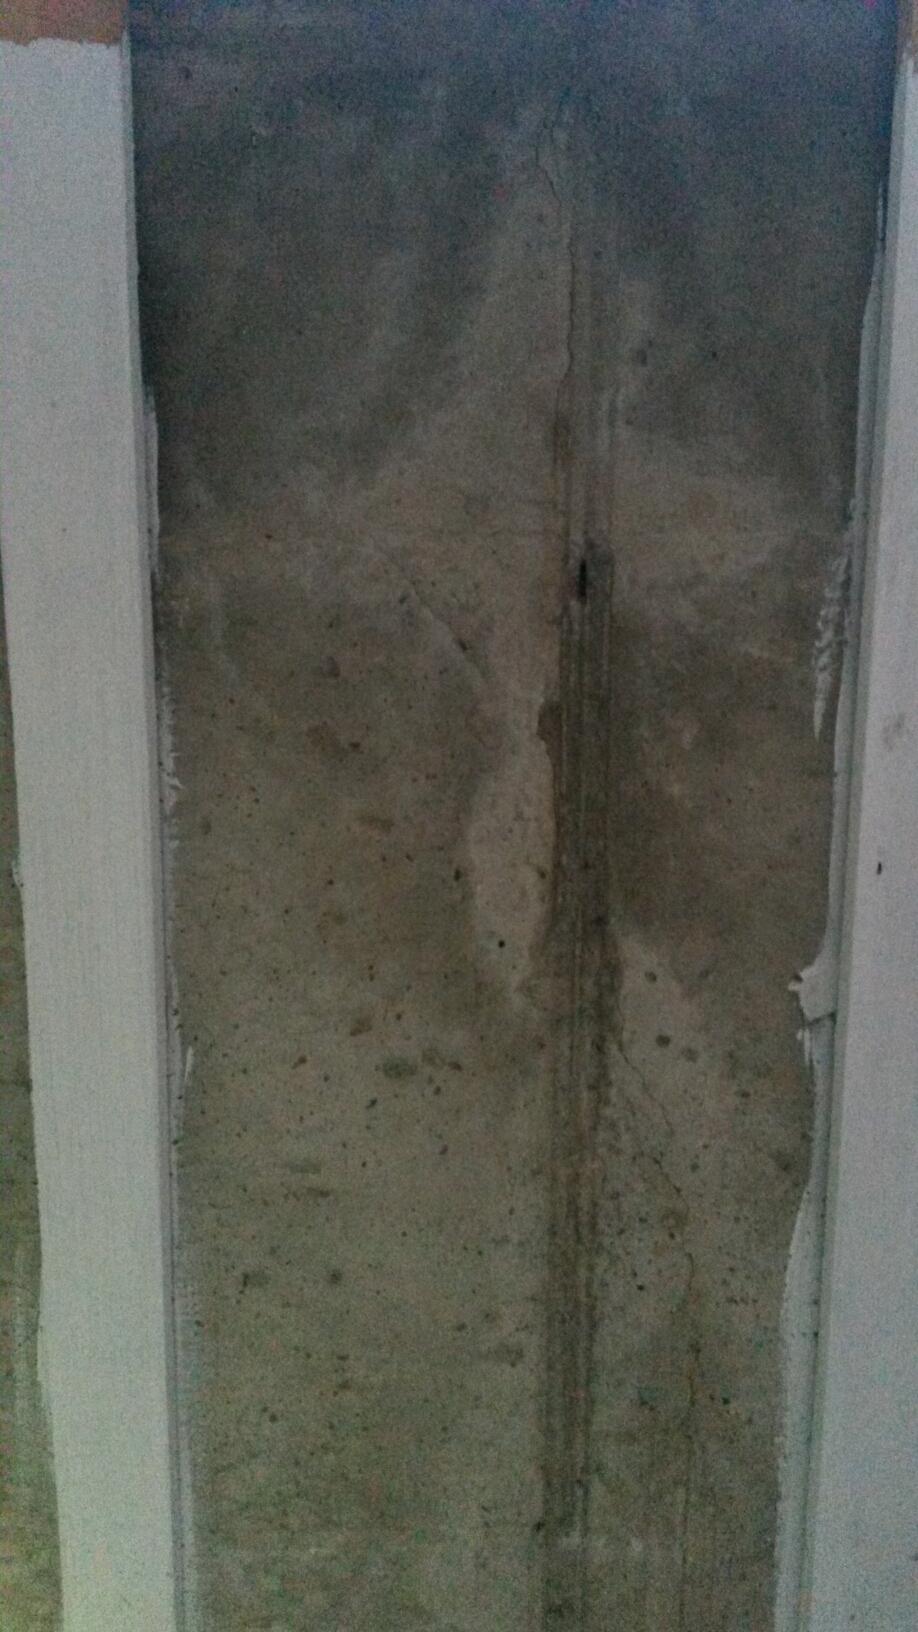 Farmington, UT - Mold cleanup in Farmington Utah.  This is a family home that is part of an estate. They are getting the home cleaned up and ready to sell. That includes getting the mold cleaned up. The moisture came in through these small foundation cracks.